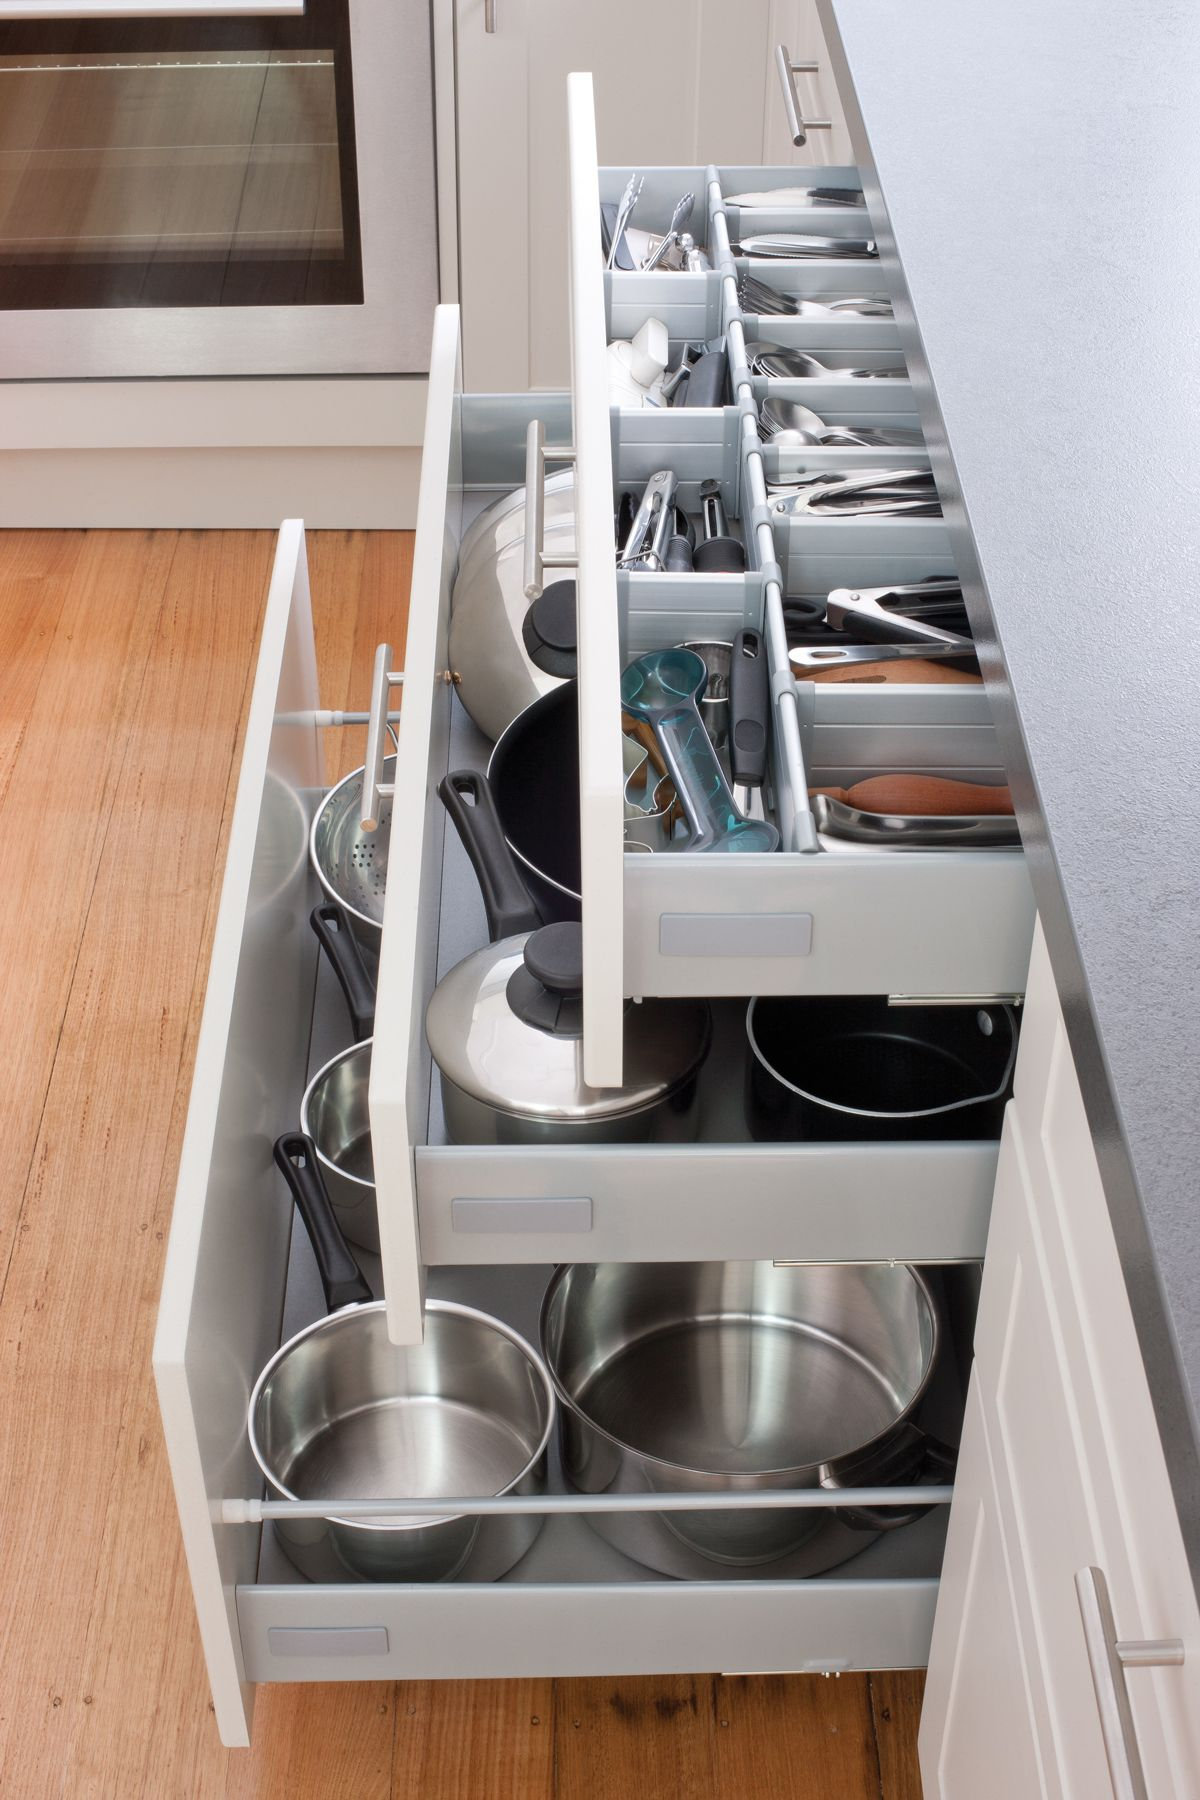 Keep Your Kitchen In Order With Our Pot Drawers And Cutlery Drawers And For Added O Best Kitchen Cabinets Kitchen Remodel Small New Kitchen Cabinets